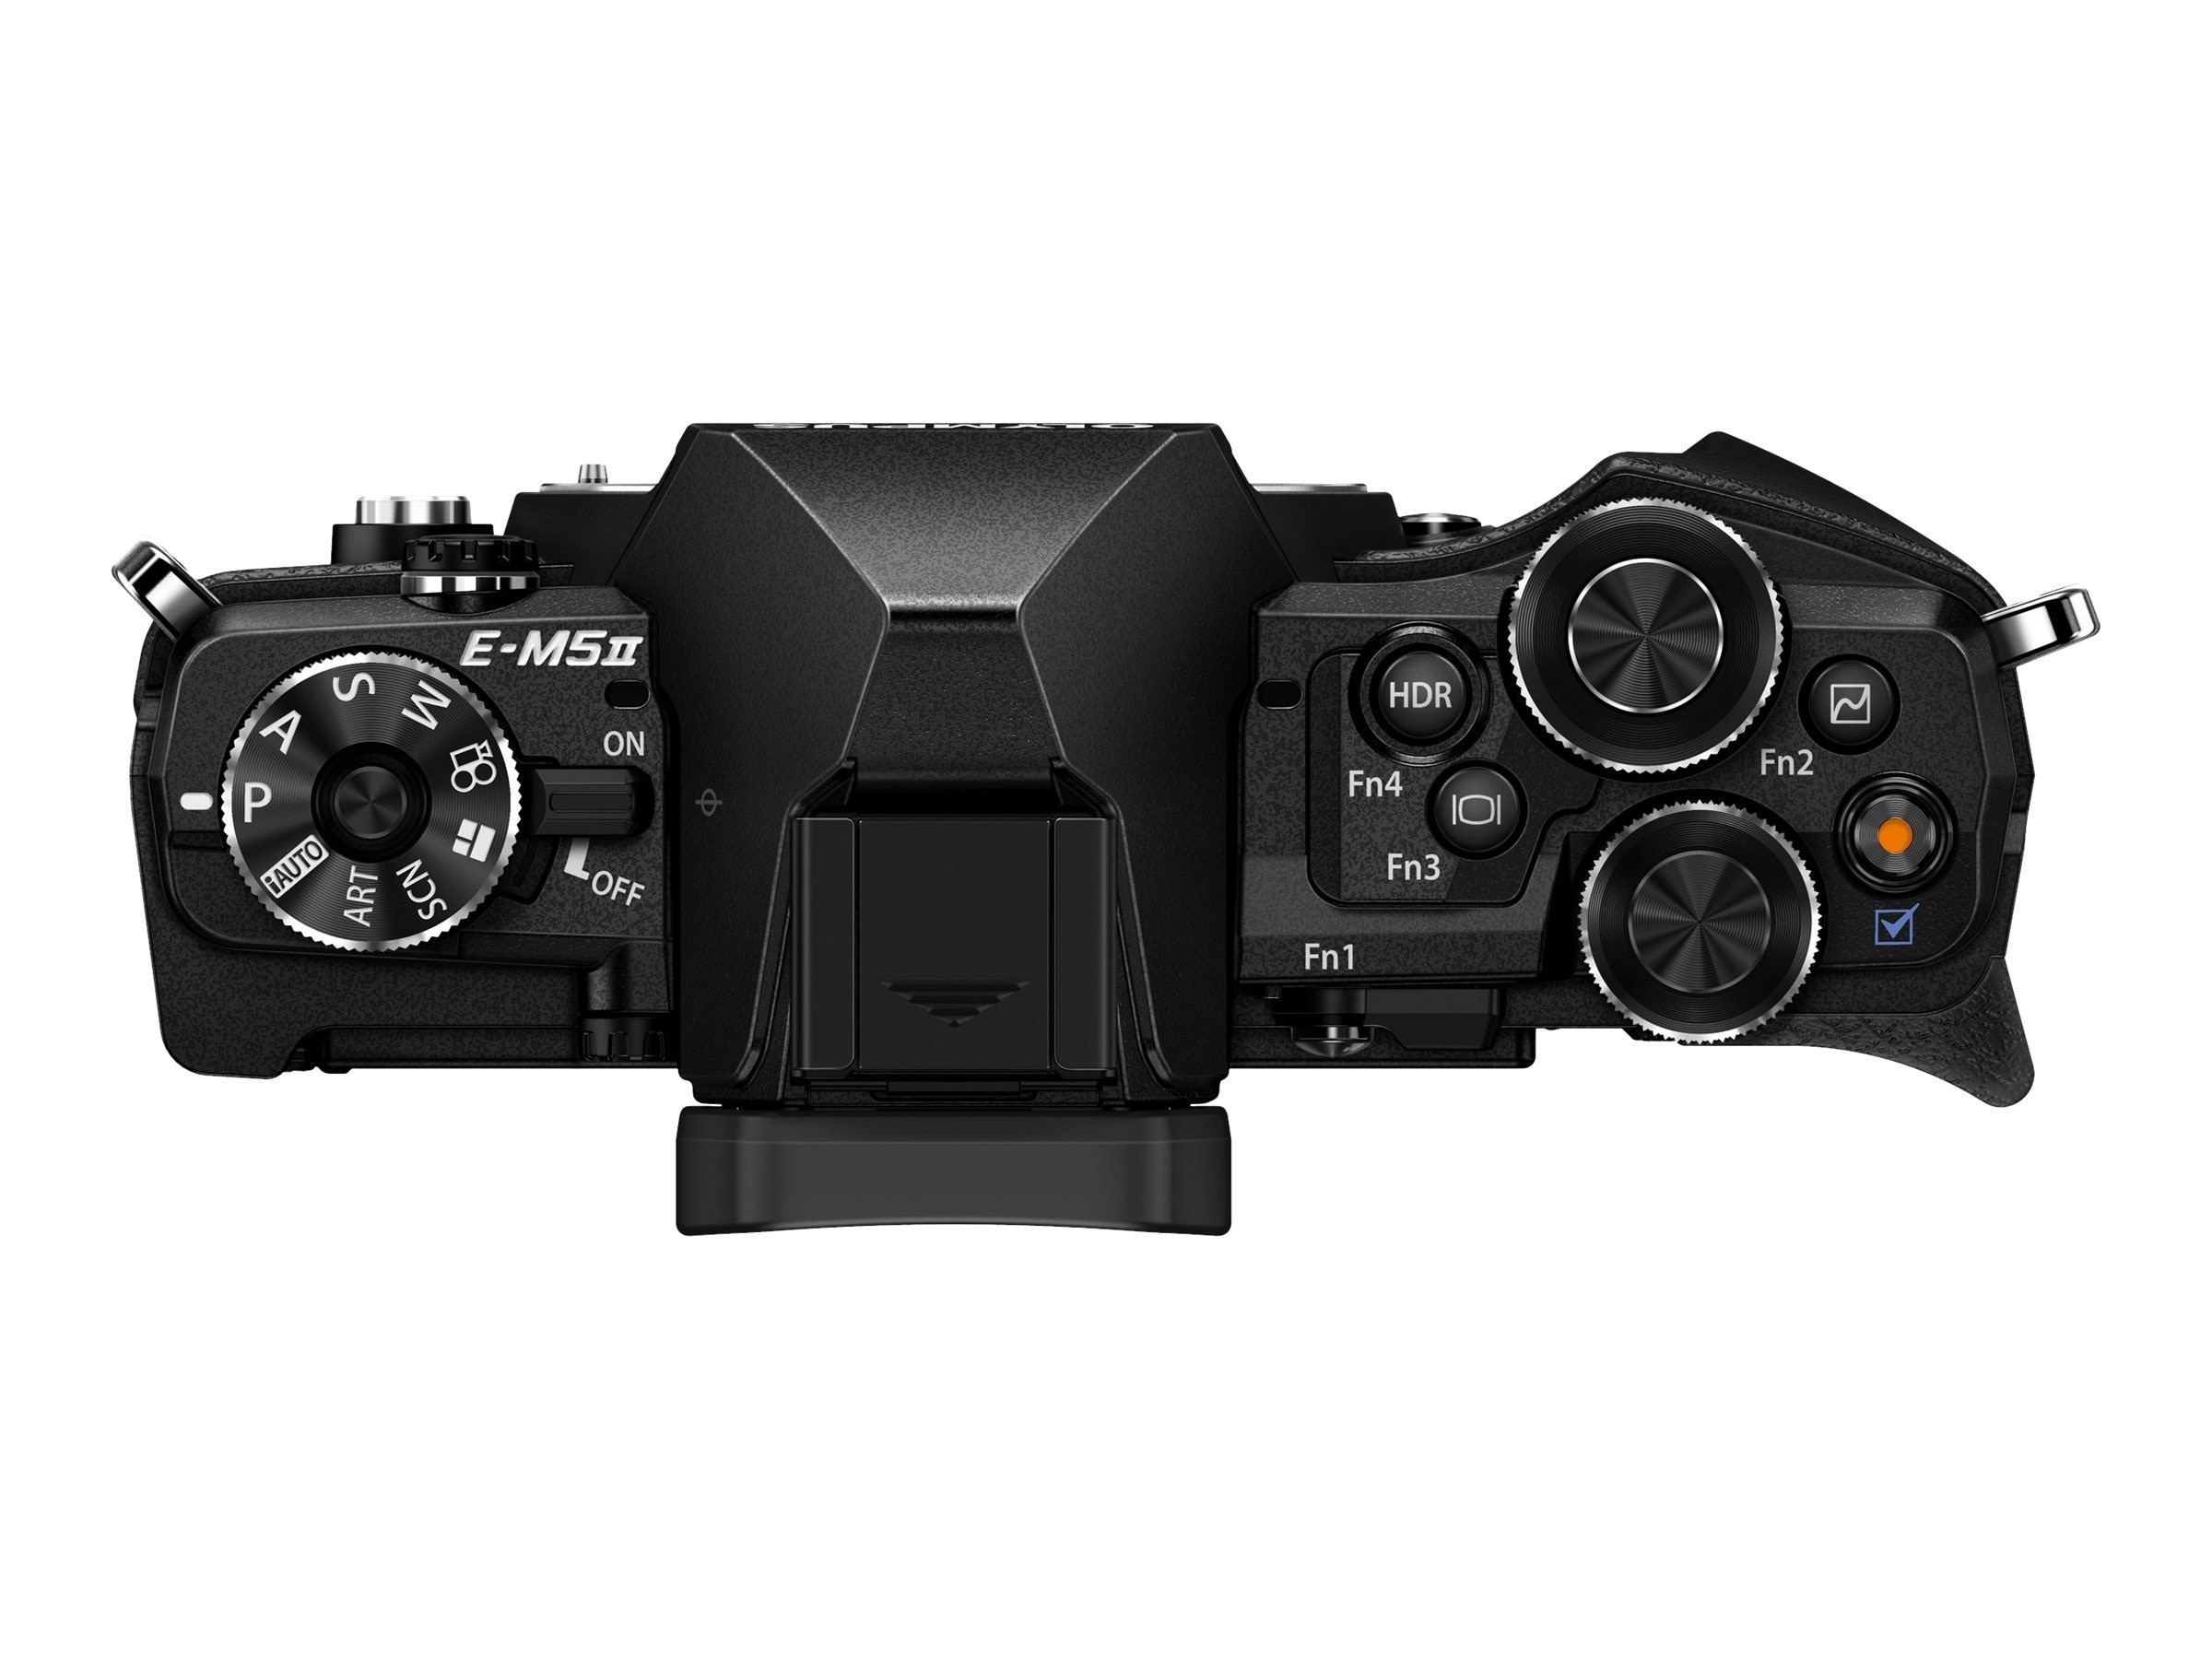 Olympus OM-D E-M5 Mark II Mirrorless Micro Four Thirds Digital, Black (Body Only), V207040BU000